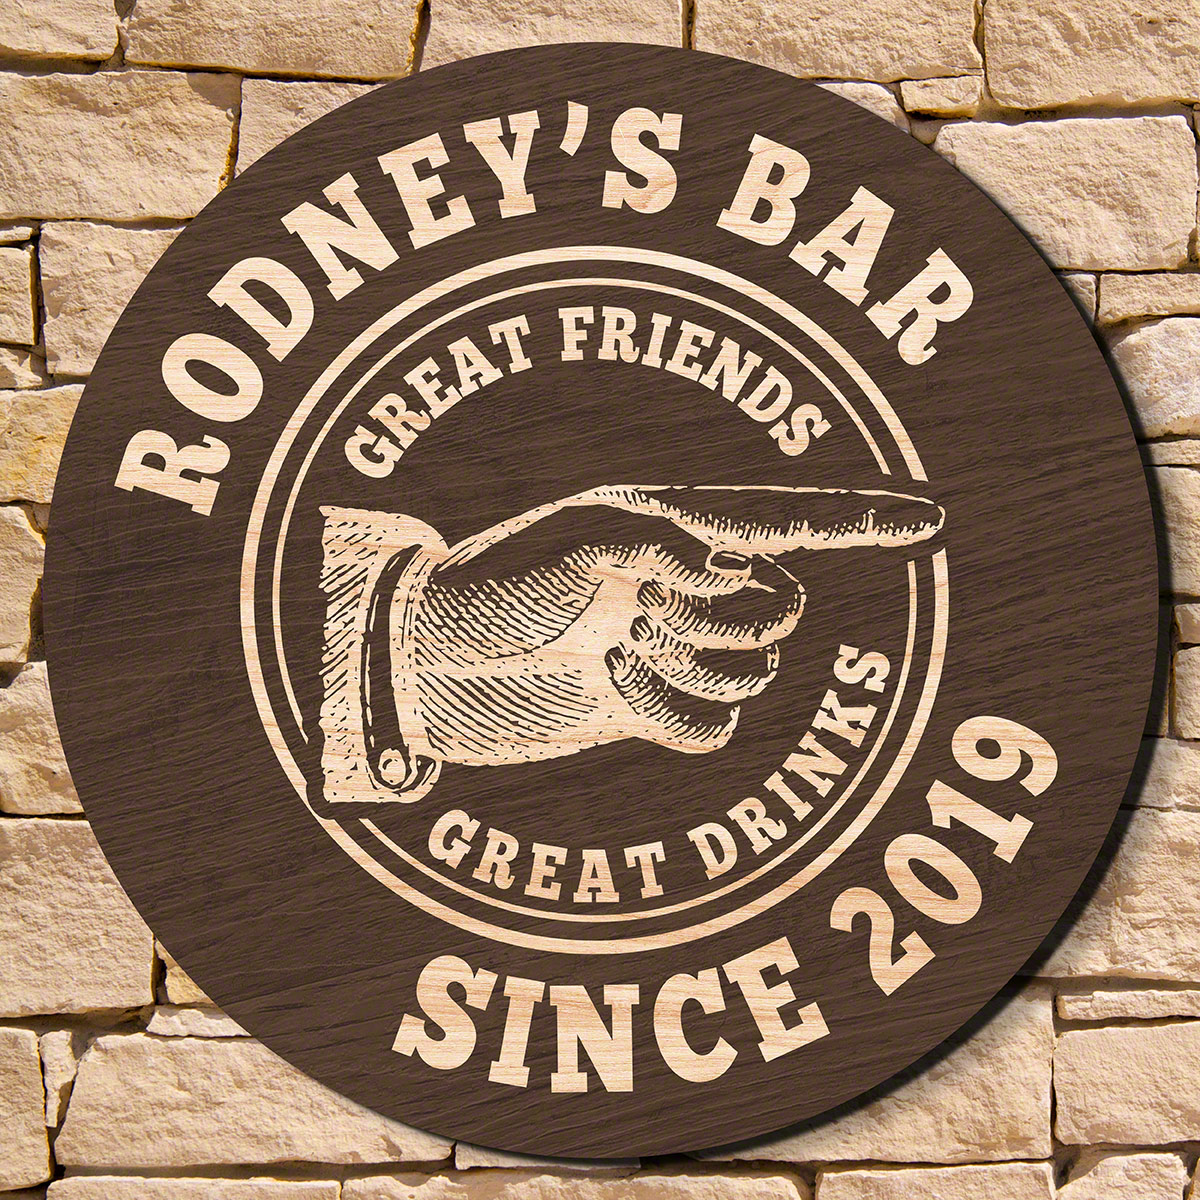 The only thing missing from your home bar is a way for guests to know which way to go for a drink when they arrive. Eliminate the need for giving directions with our vintage bar custom wooden welcome sign, which comes engraved with two lines of text and a #bar